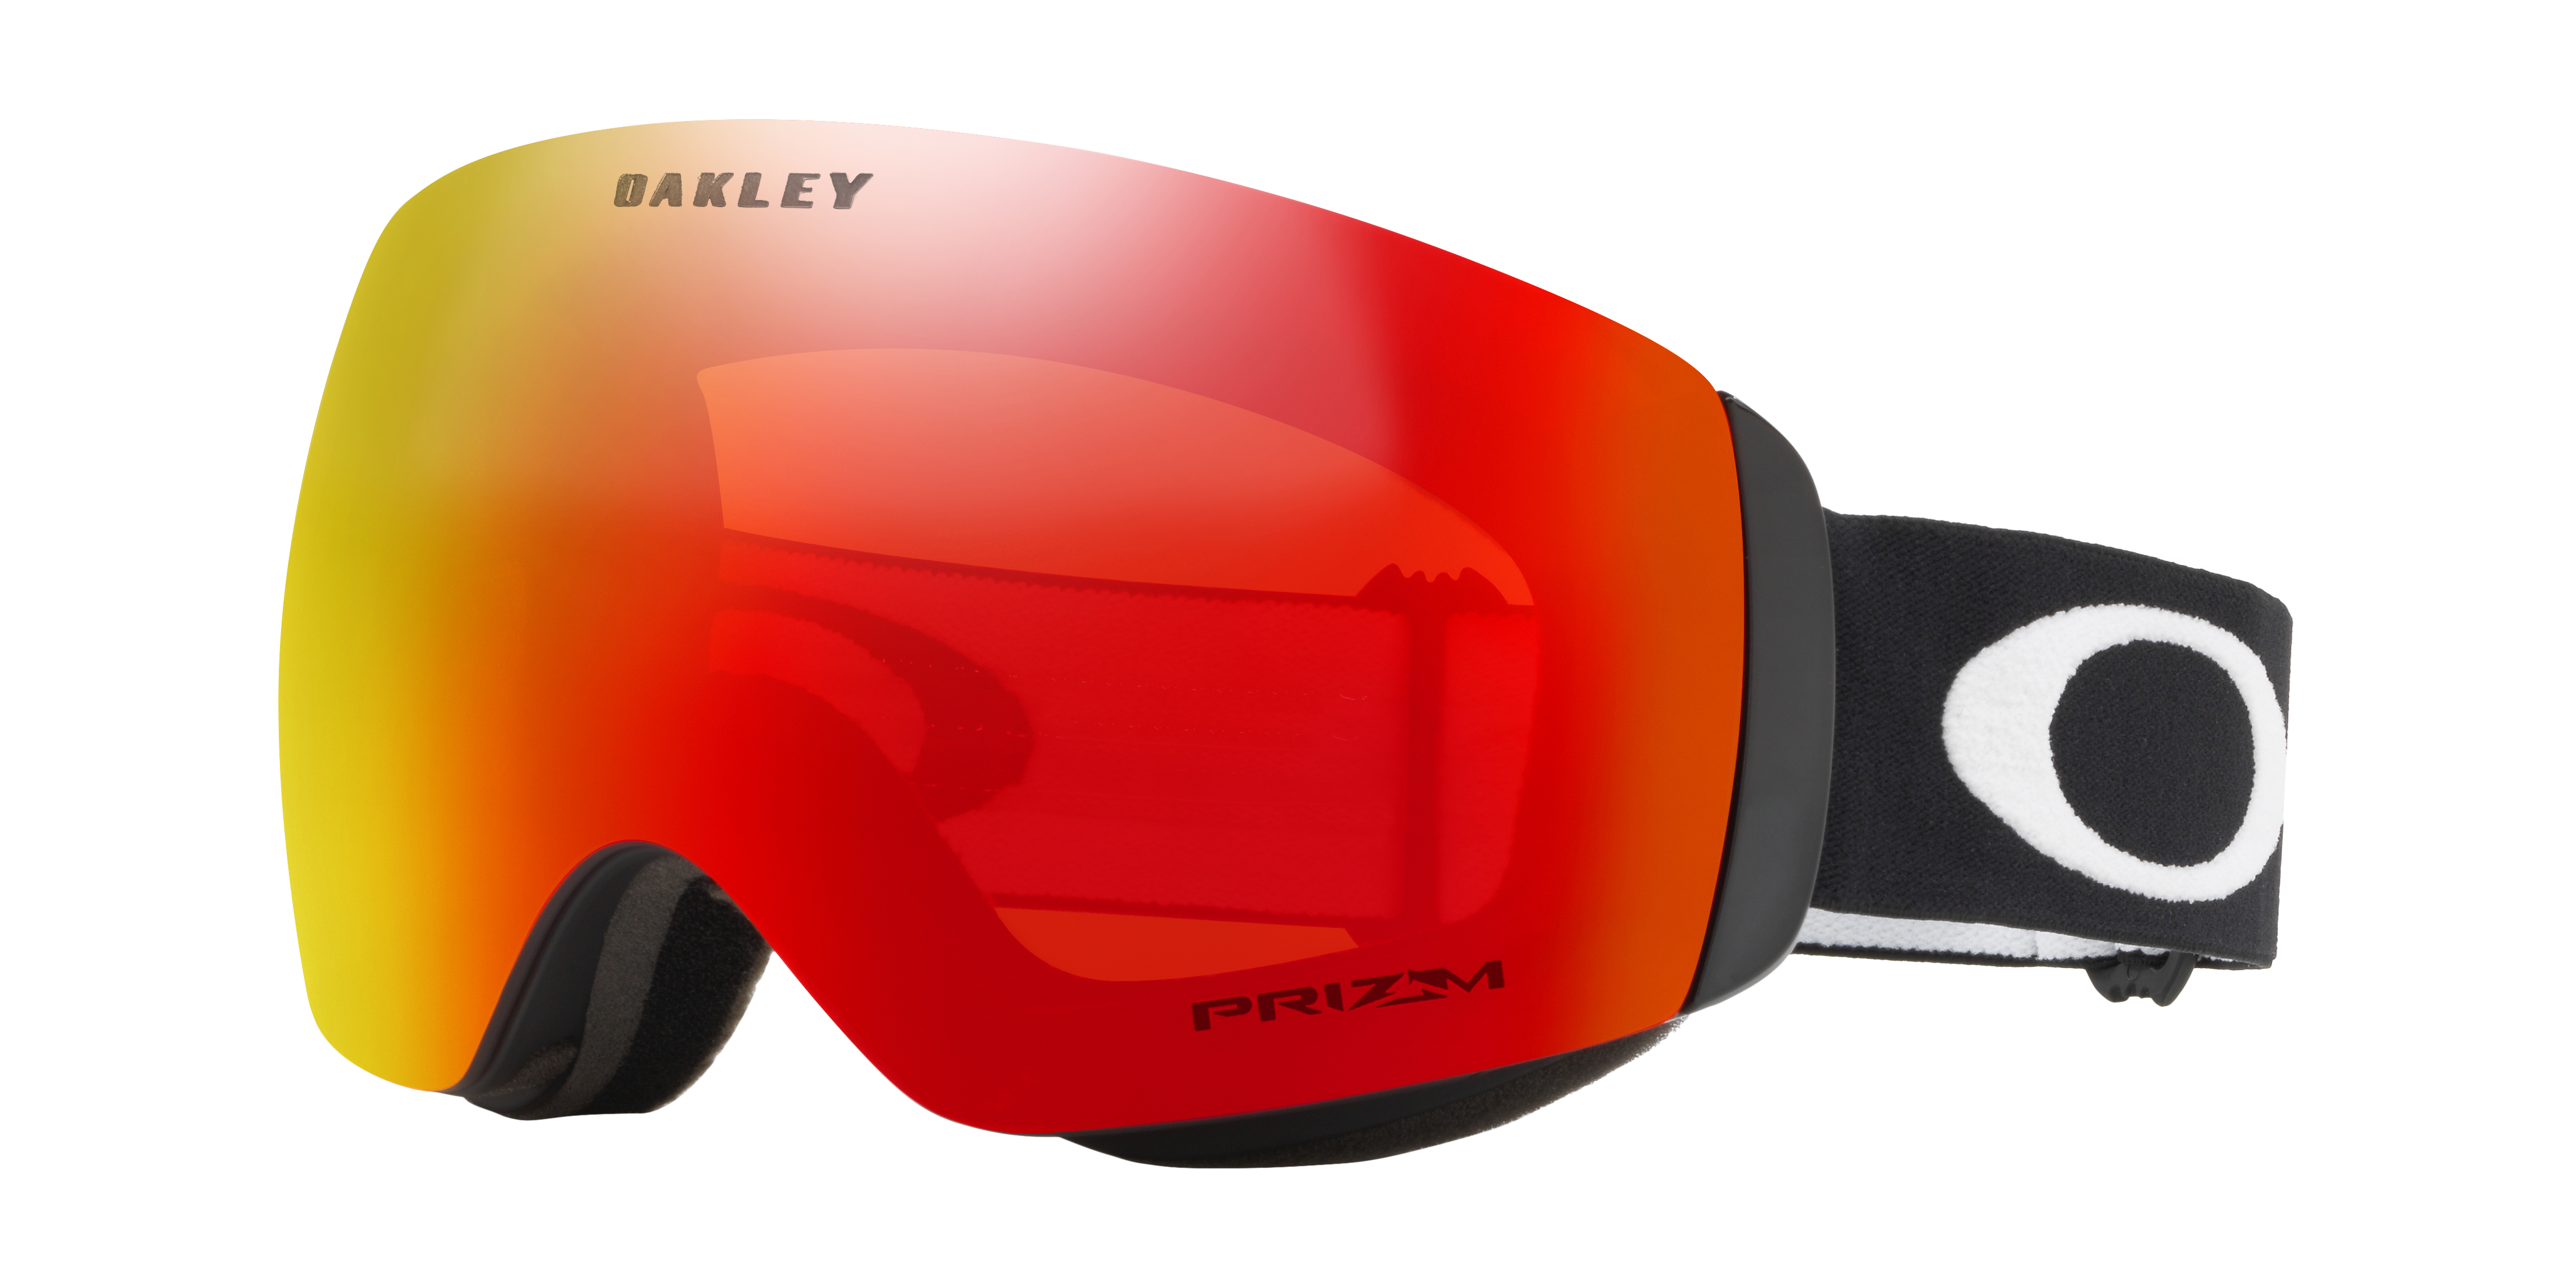 OAKLEY MASCHERA FLIGHT DECK XM (706439) - 2021